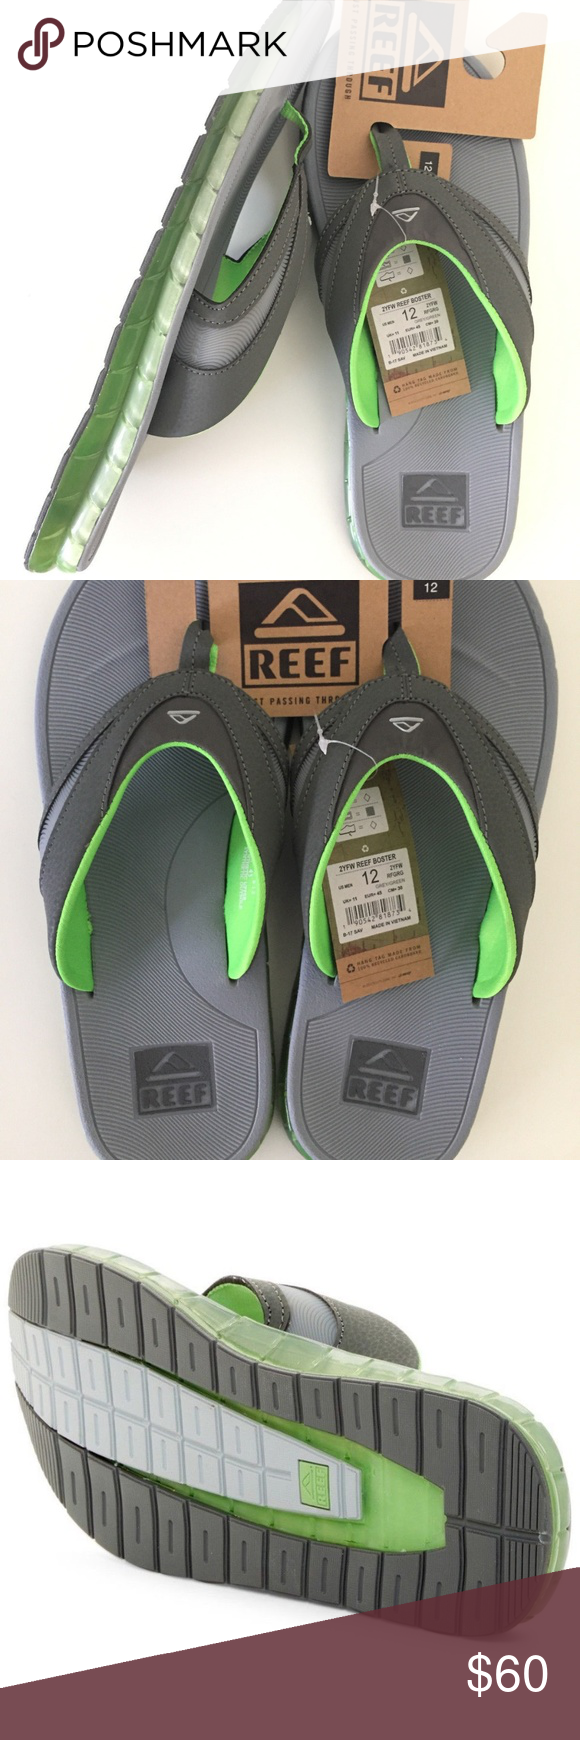 Reef Boster Men'S 12 Slip On Flip Flop Sandals Gel New With reef boster sandals Shoes